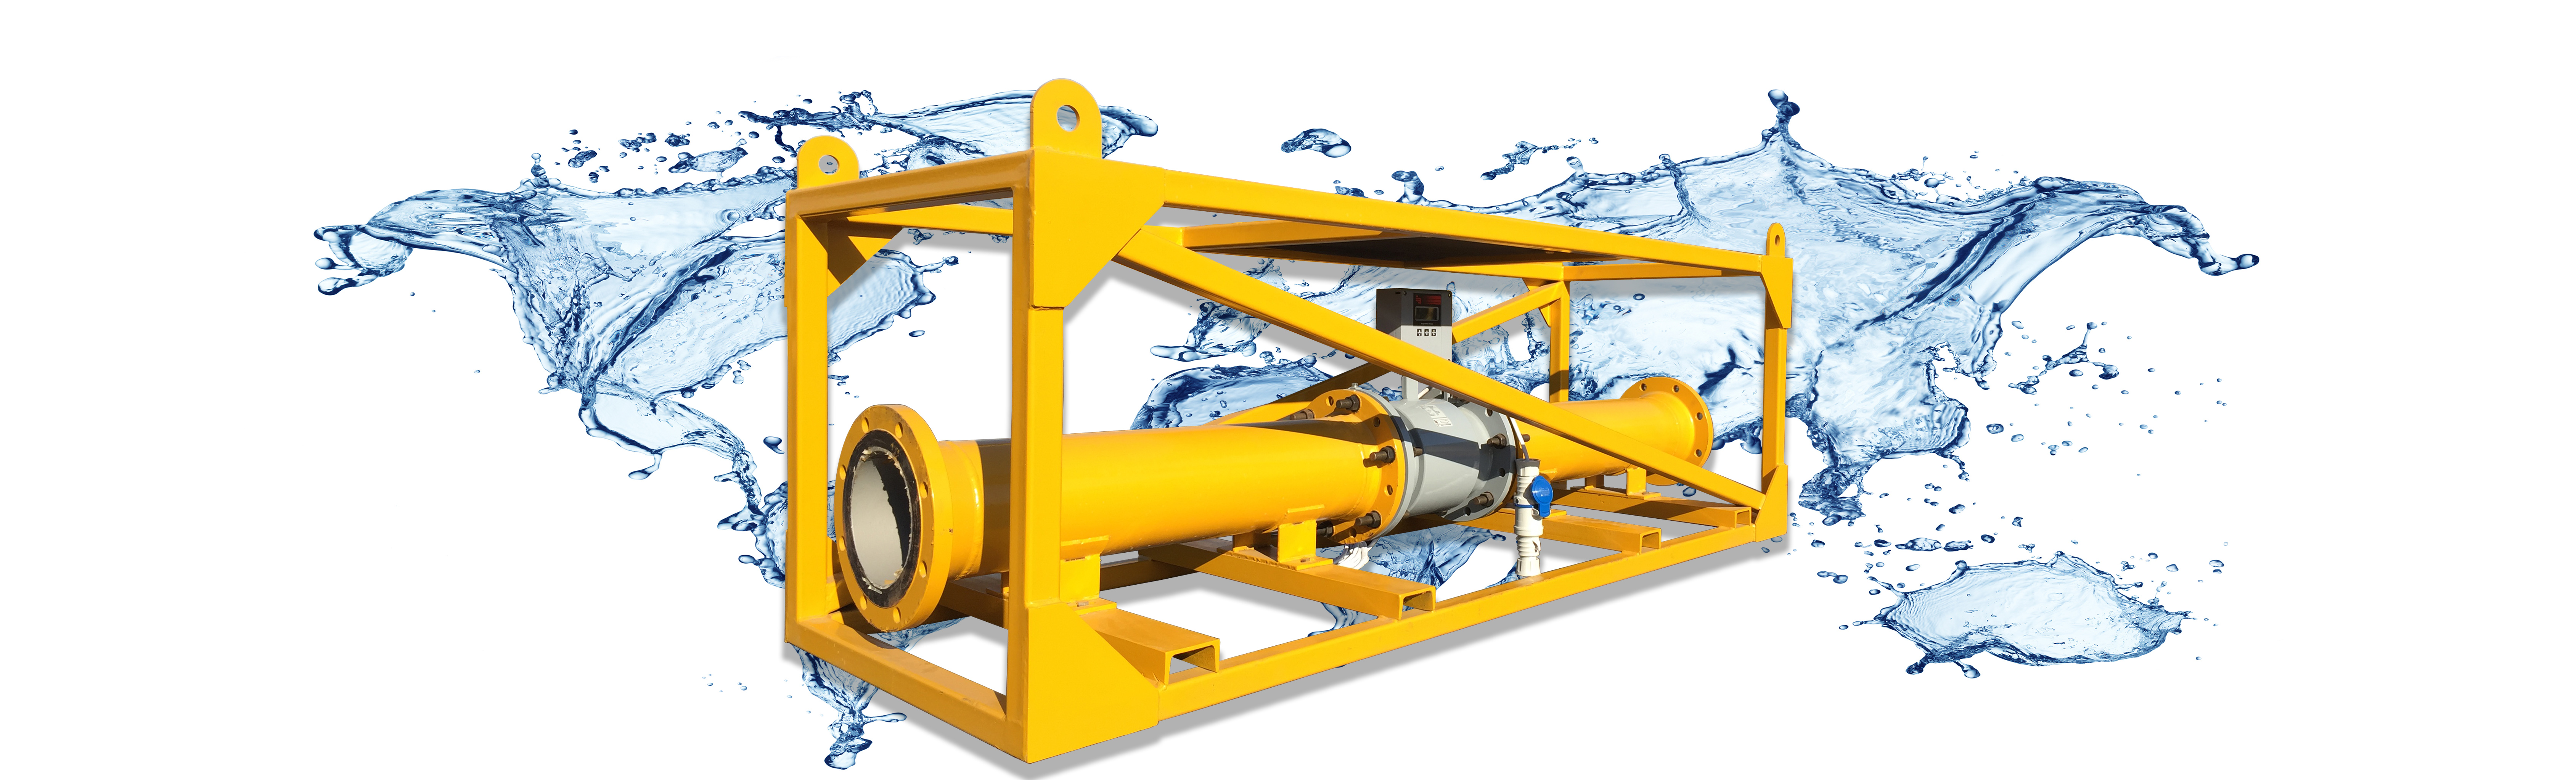 Career | Dewatering - Pipeline Process Services - Water